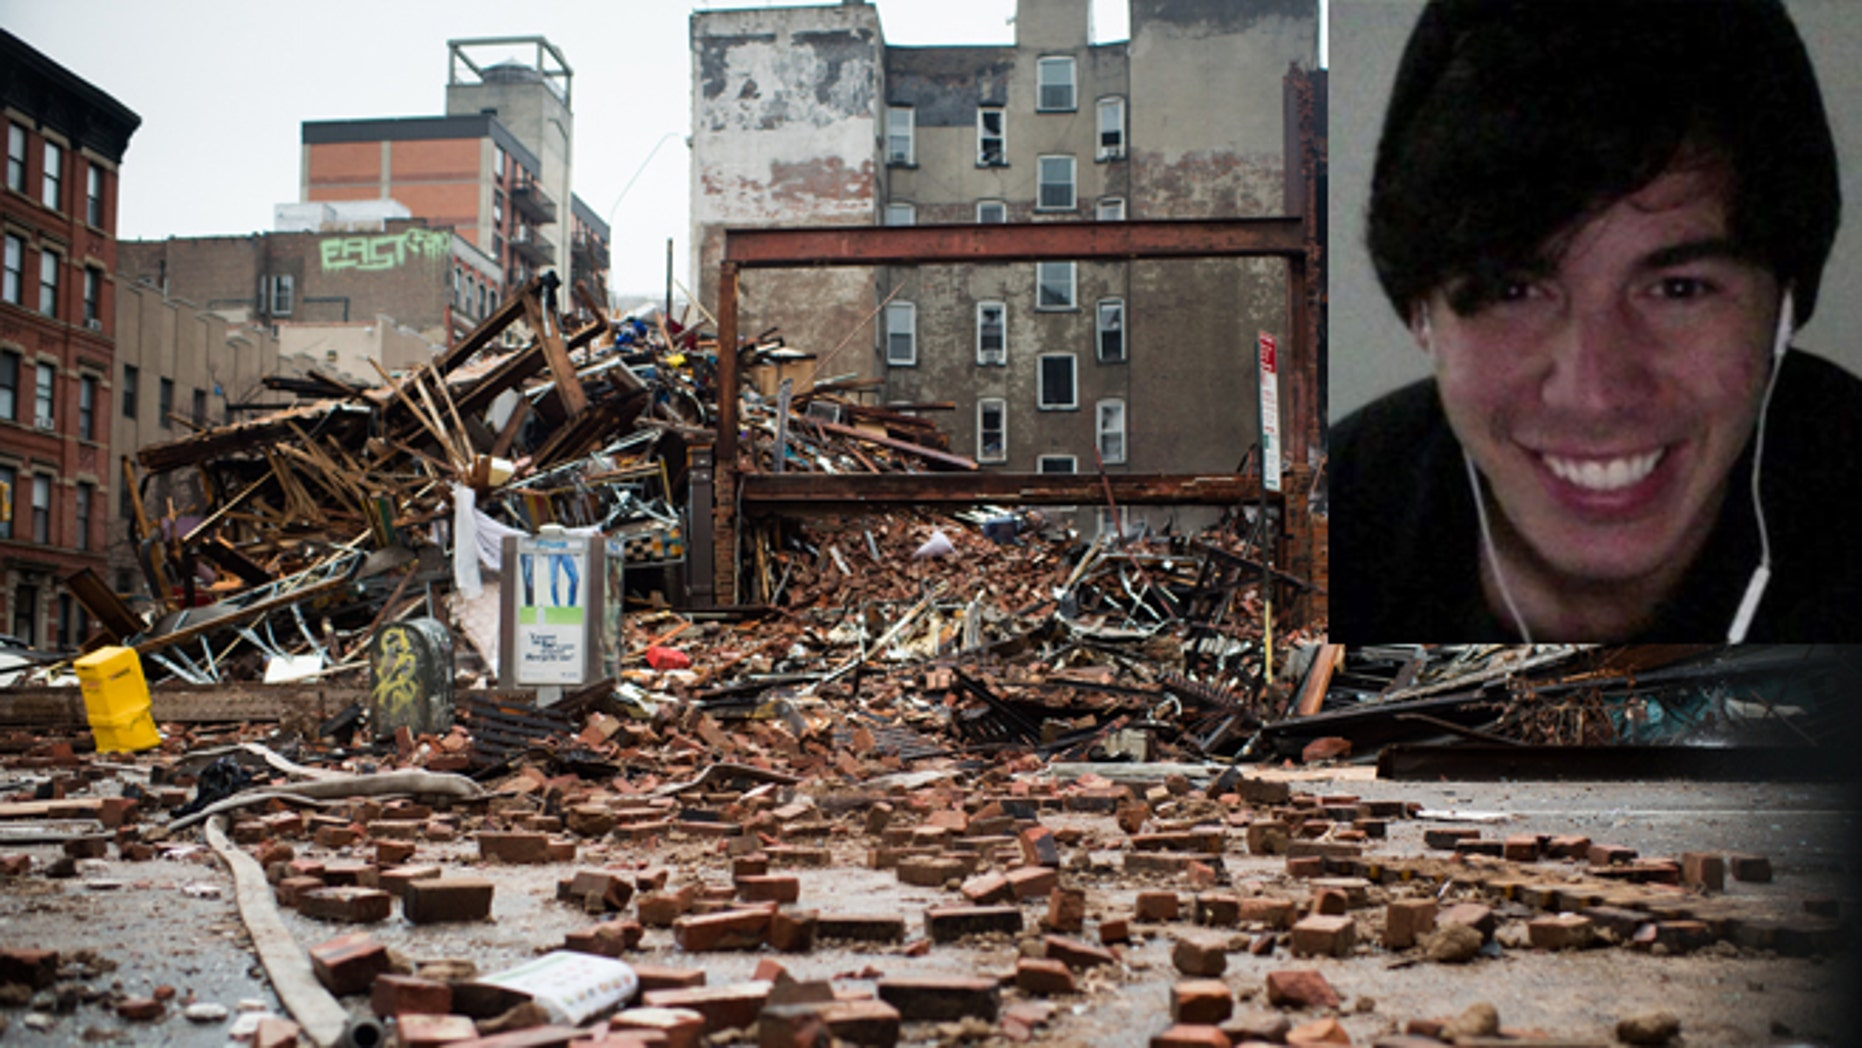 A pile of debris remains at the site of a building explosion in the East Village neighborhood of New York, Friday, March 27, 2015.  Nineteen people were injured, four critically, after the powerful blast and fire sent flames soaring and debris flying Thursday afternoon. Inset: Nicholas Figueroa. (Photos: AP Photo/The New York Times, Nancy Borowick, Pool; Inset: Facebook)